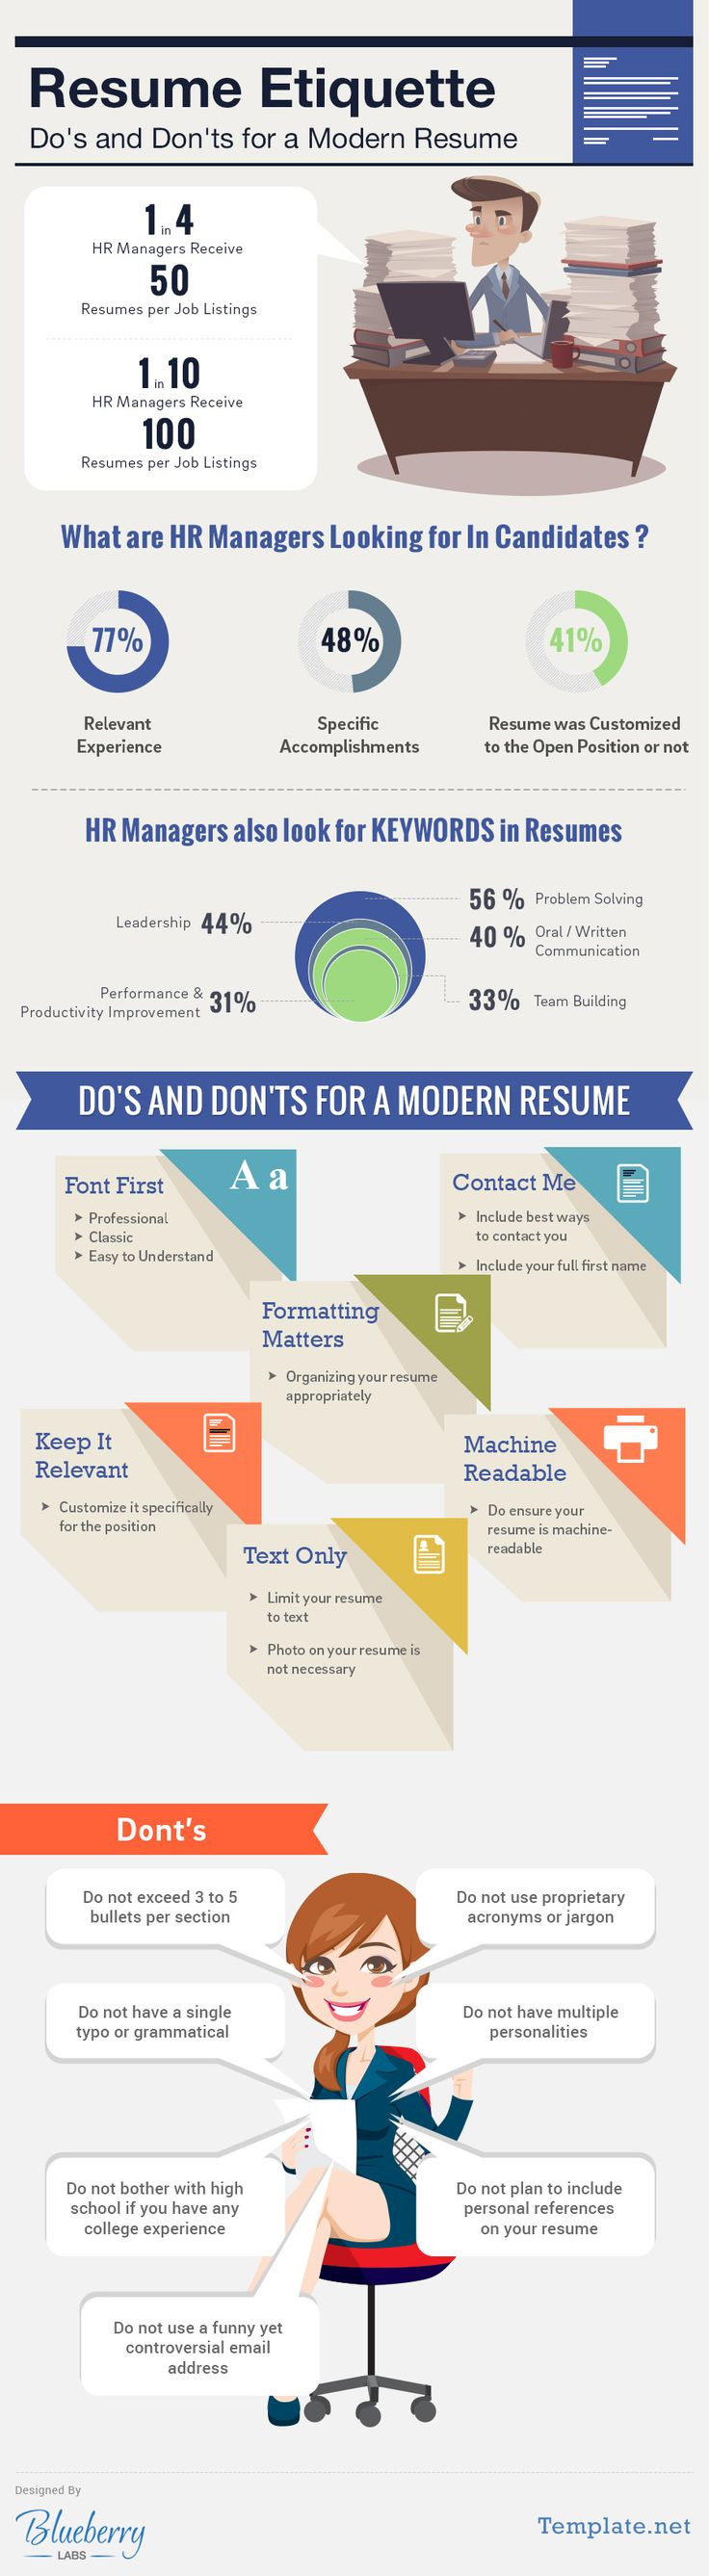 dos and donts for a modern resume